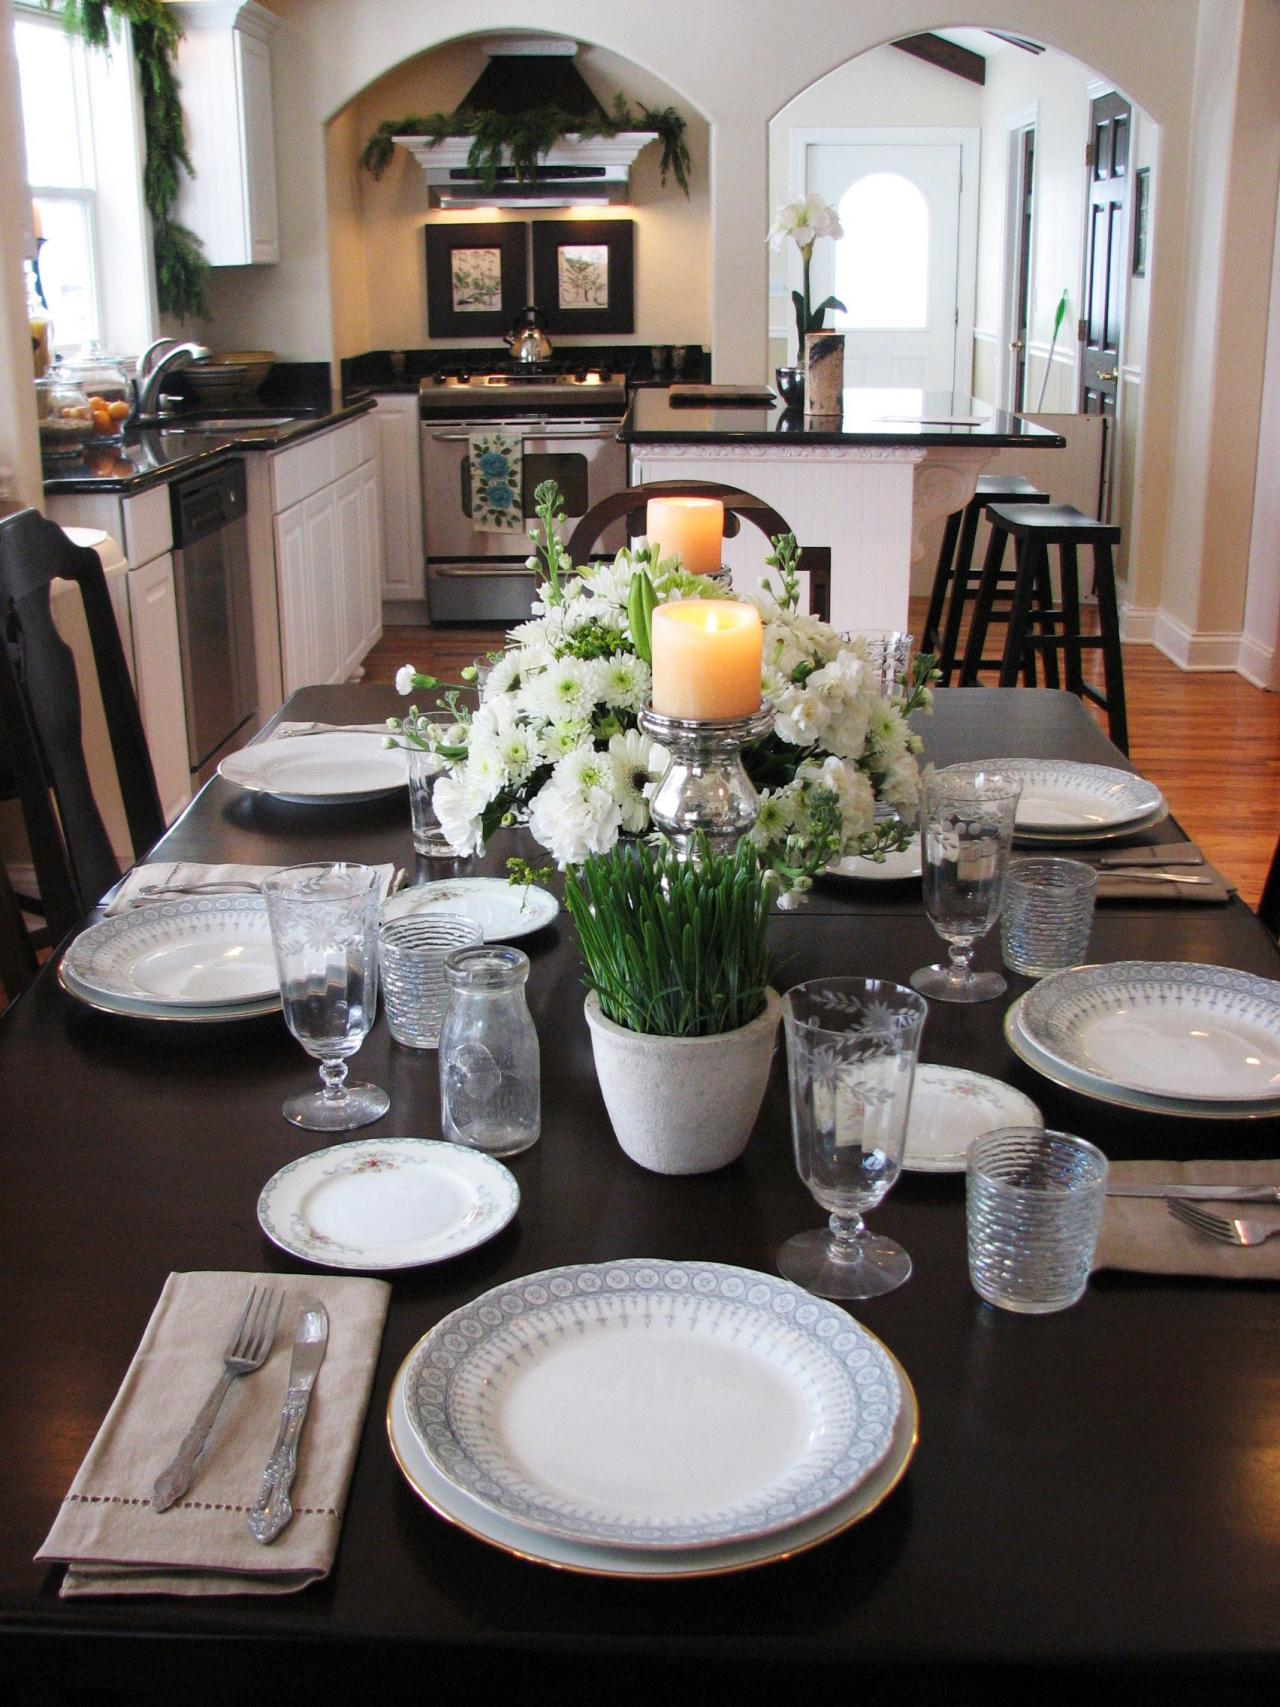 Dining table centerpiece - Kitchen Table Centerpiece Design Ideas